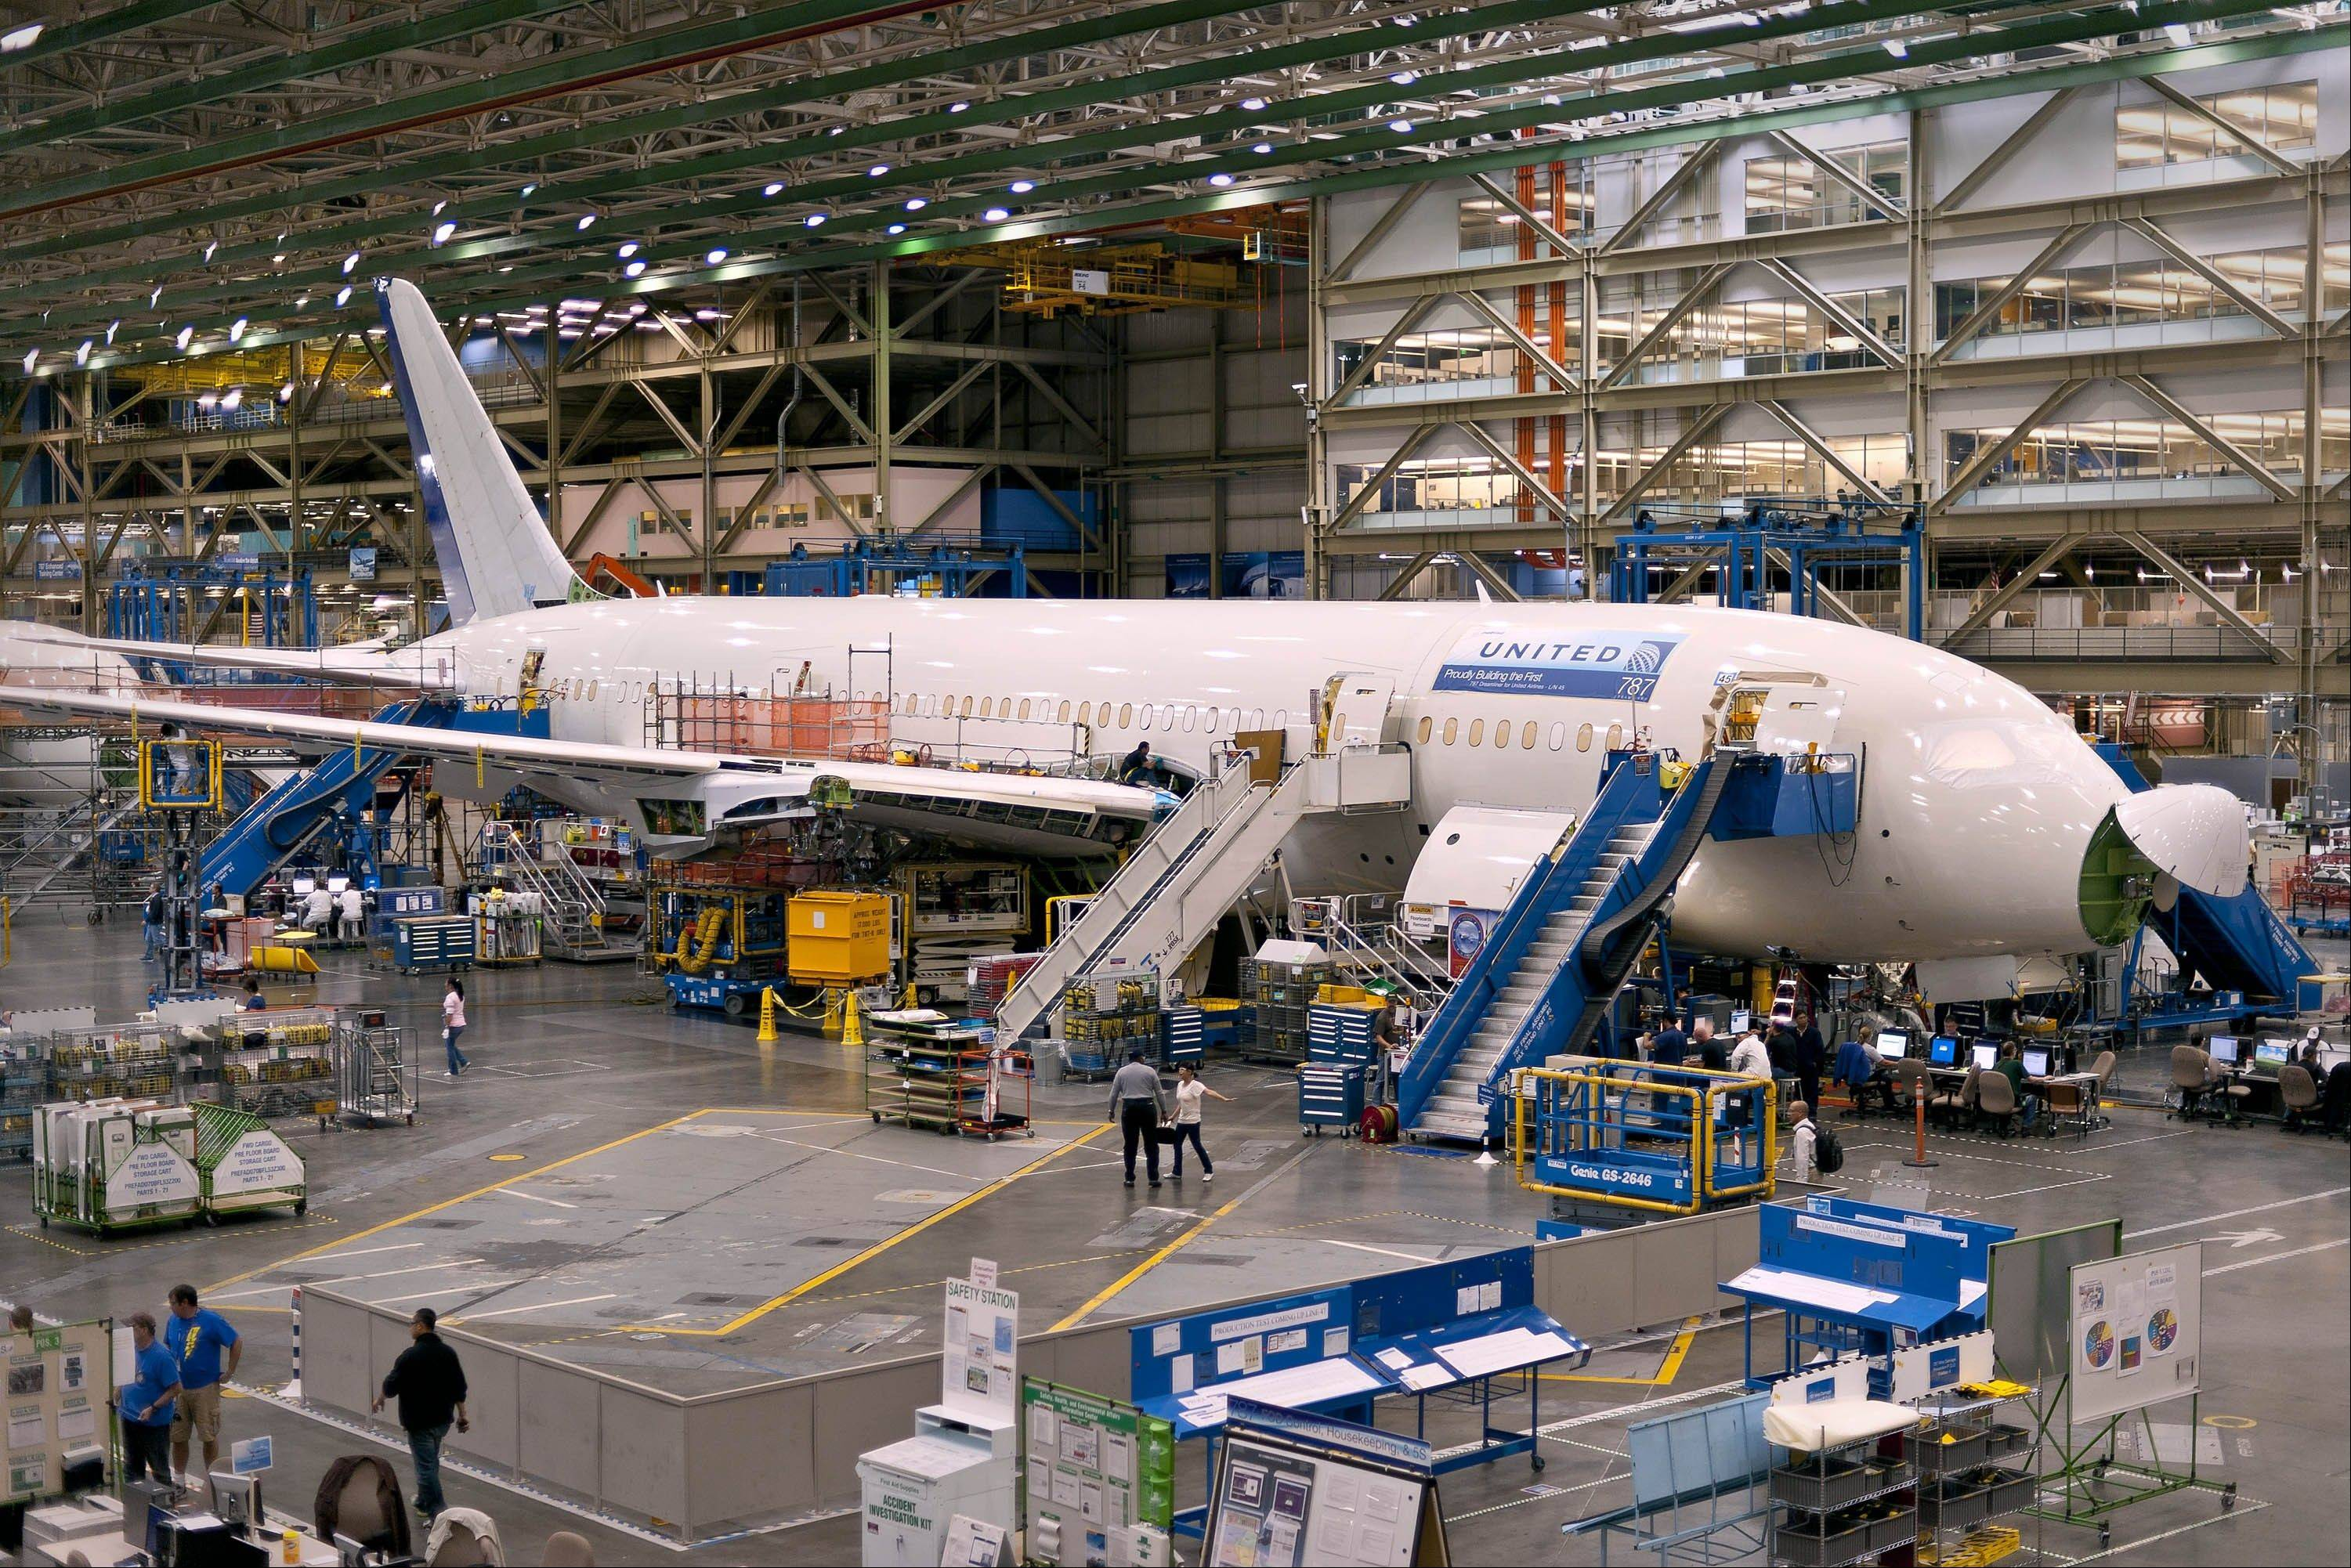 Assembly of Boeing Co.'s 787 Dreamliner at the company's factory in Everett, Washington.